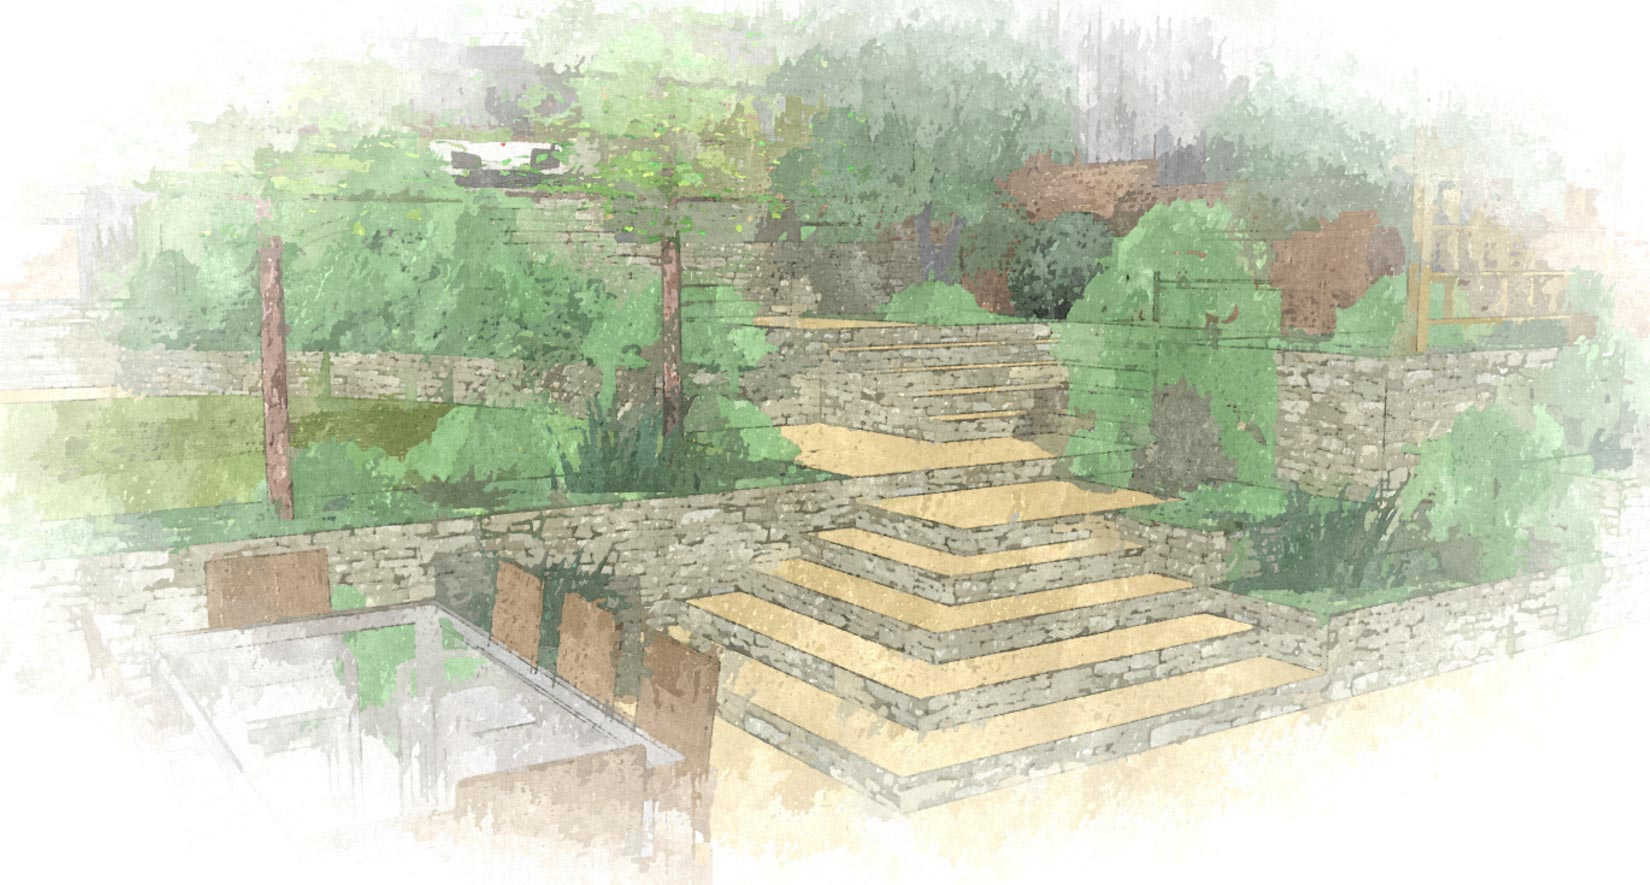 slate grey garden design plans are hand drawn and coloured with great care